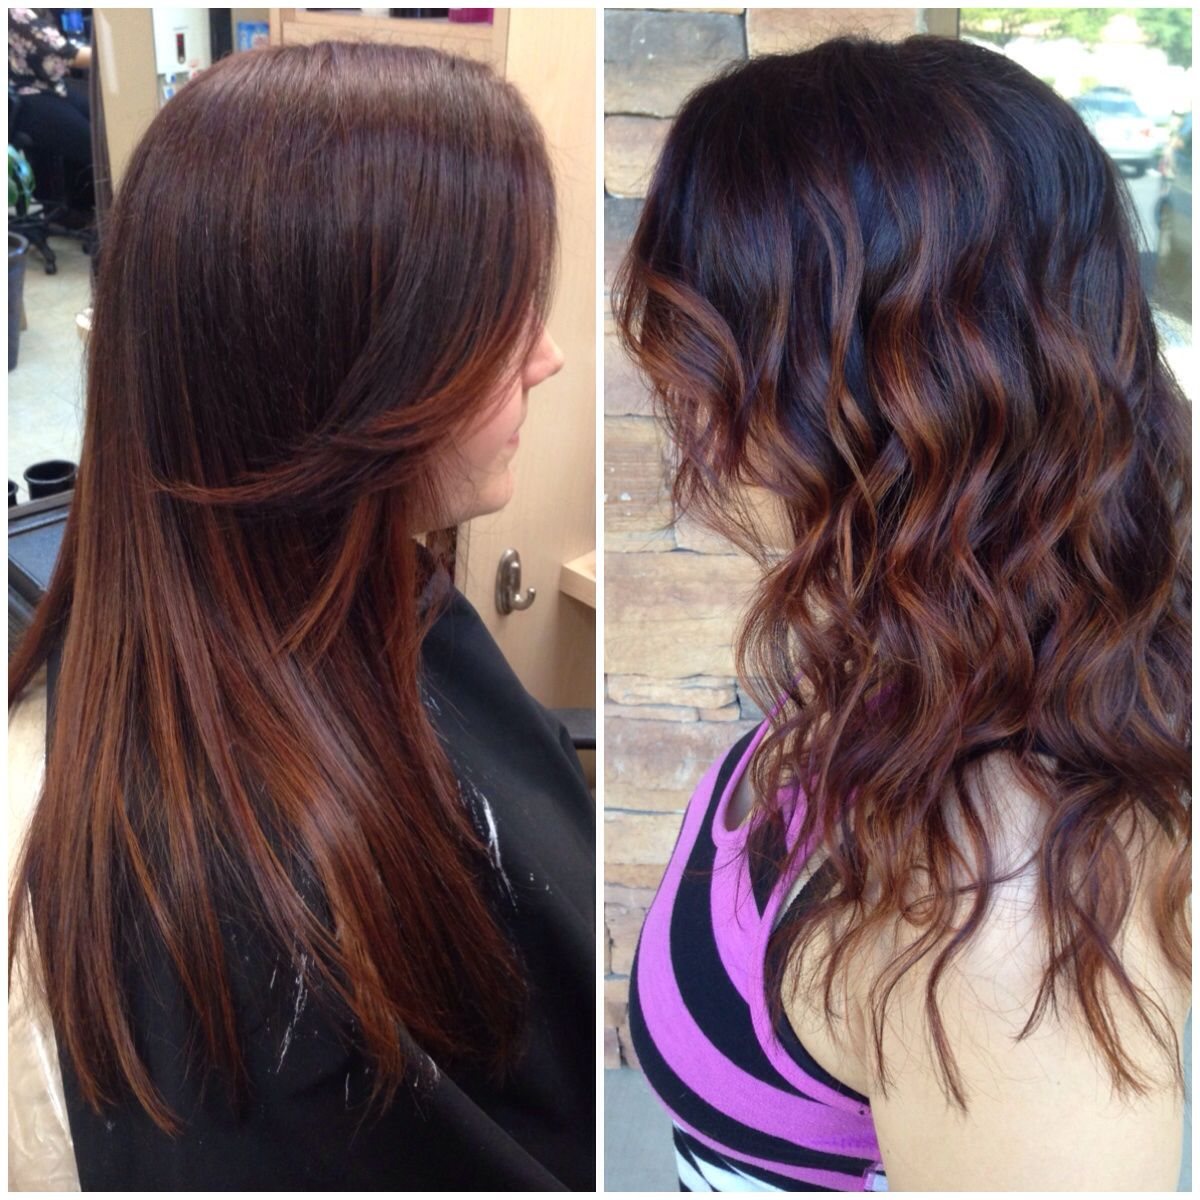 Pin By Lauramichellebeauty Wendt On Laura Michelle Beauty Balayage Hair Balayage Auburn Balayage